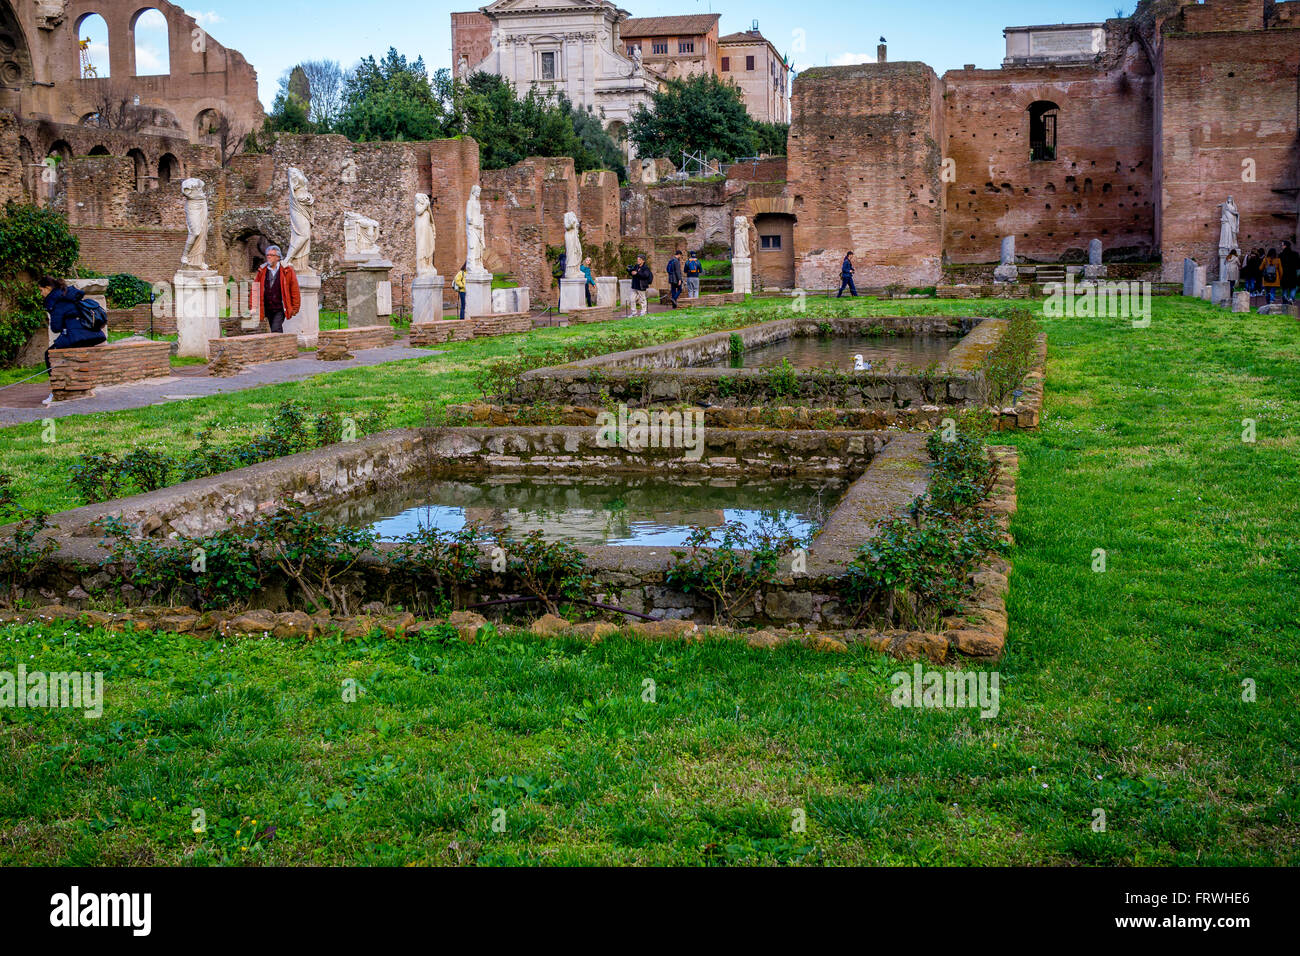 house of the vestal virgins atrium vestae roman forum rome stock photo royalty free image. Black Bedroom Furniture Sets. Home Design Ideas